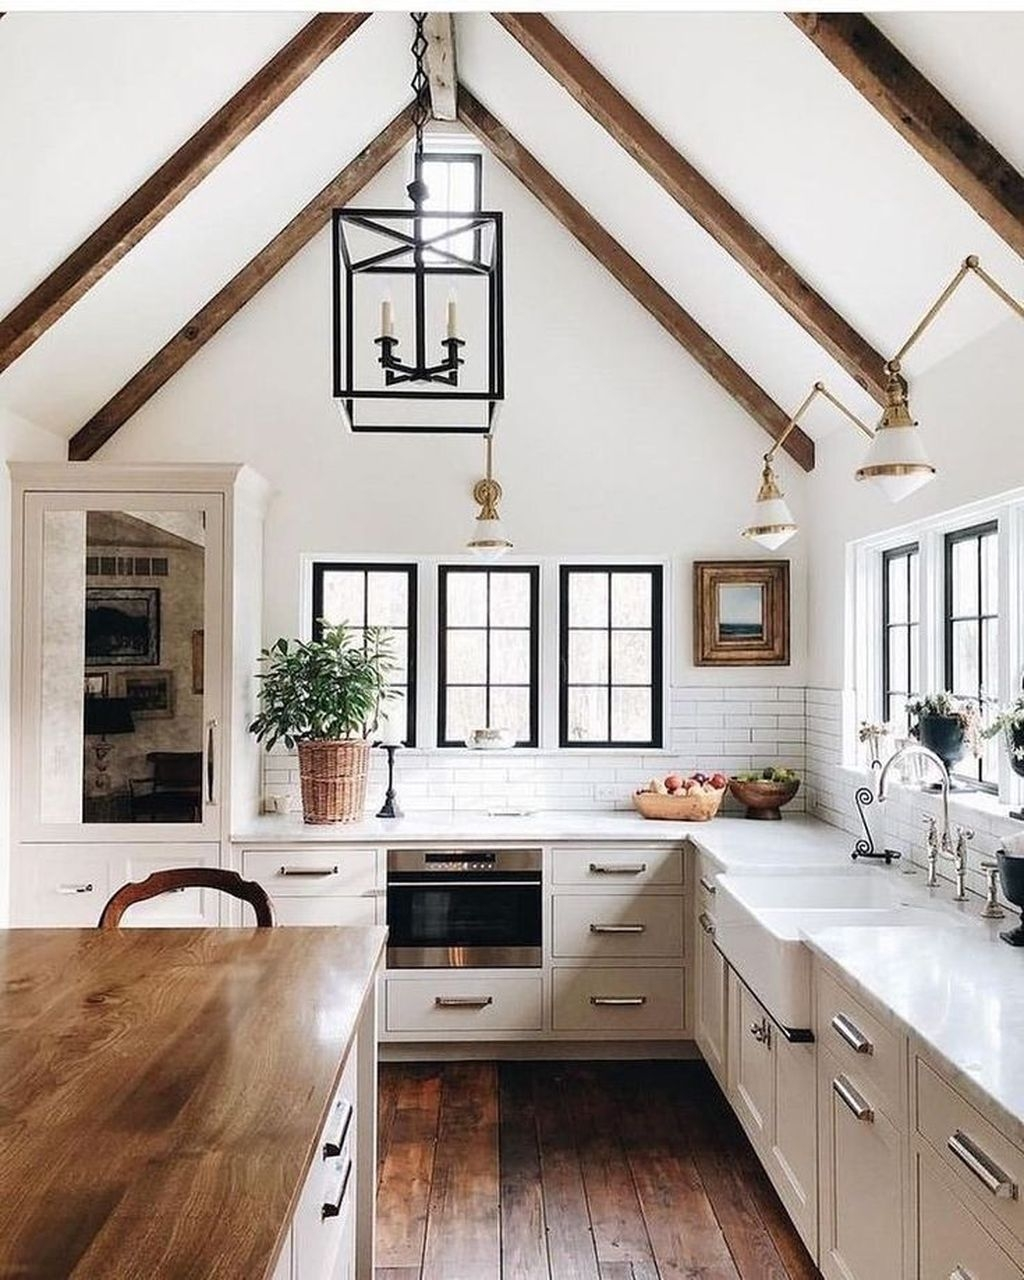 Awesome Rustic Kitchen Island Design Ideas 15